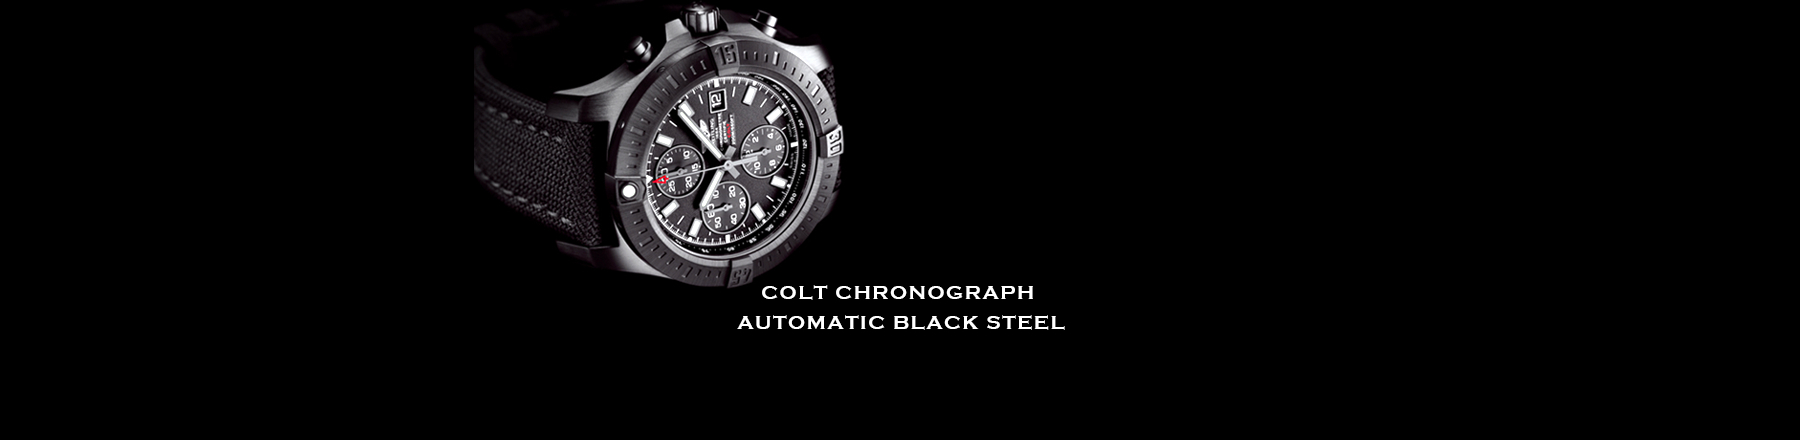 COLT CHRONOGRAPH AUTOMATIC BLACK STEEL